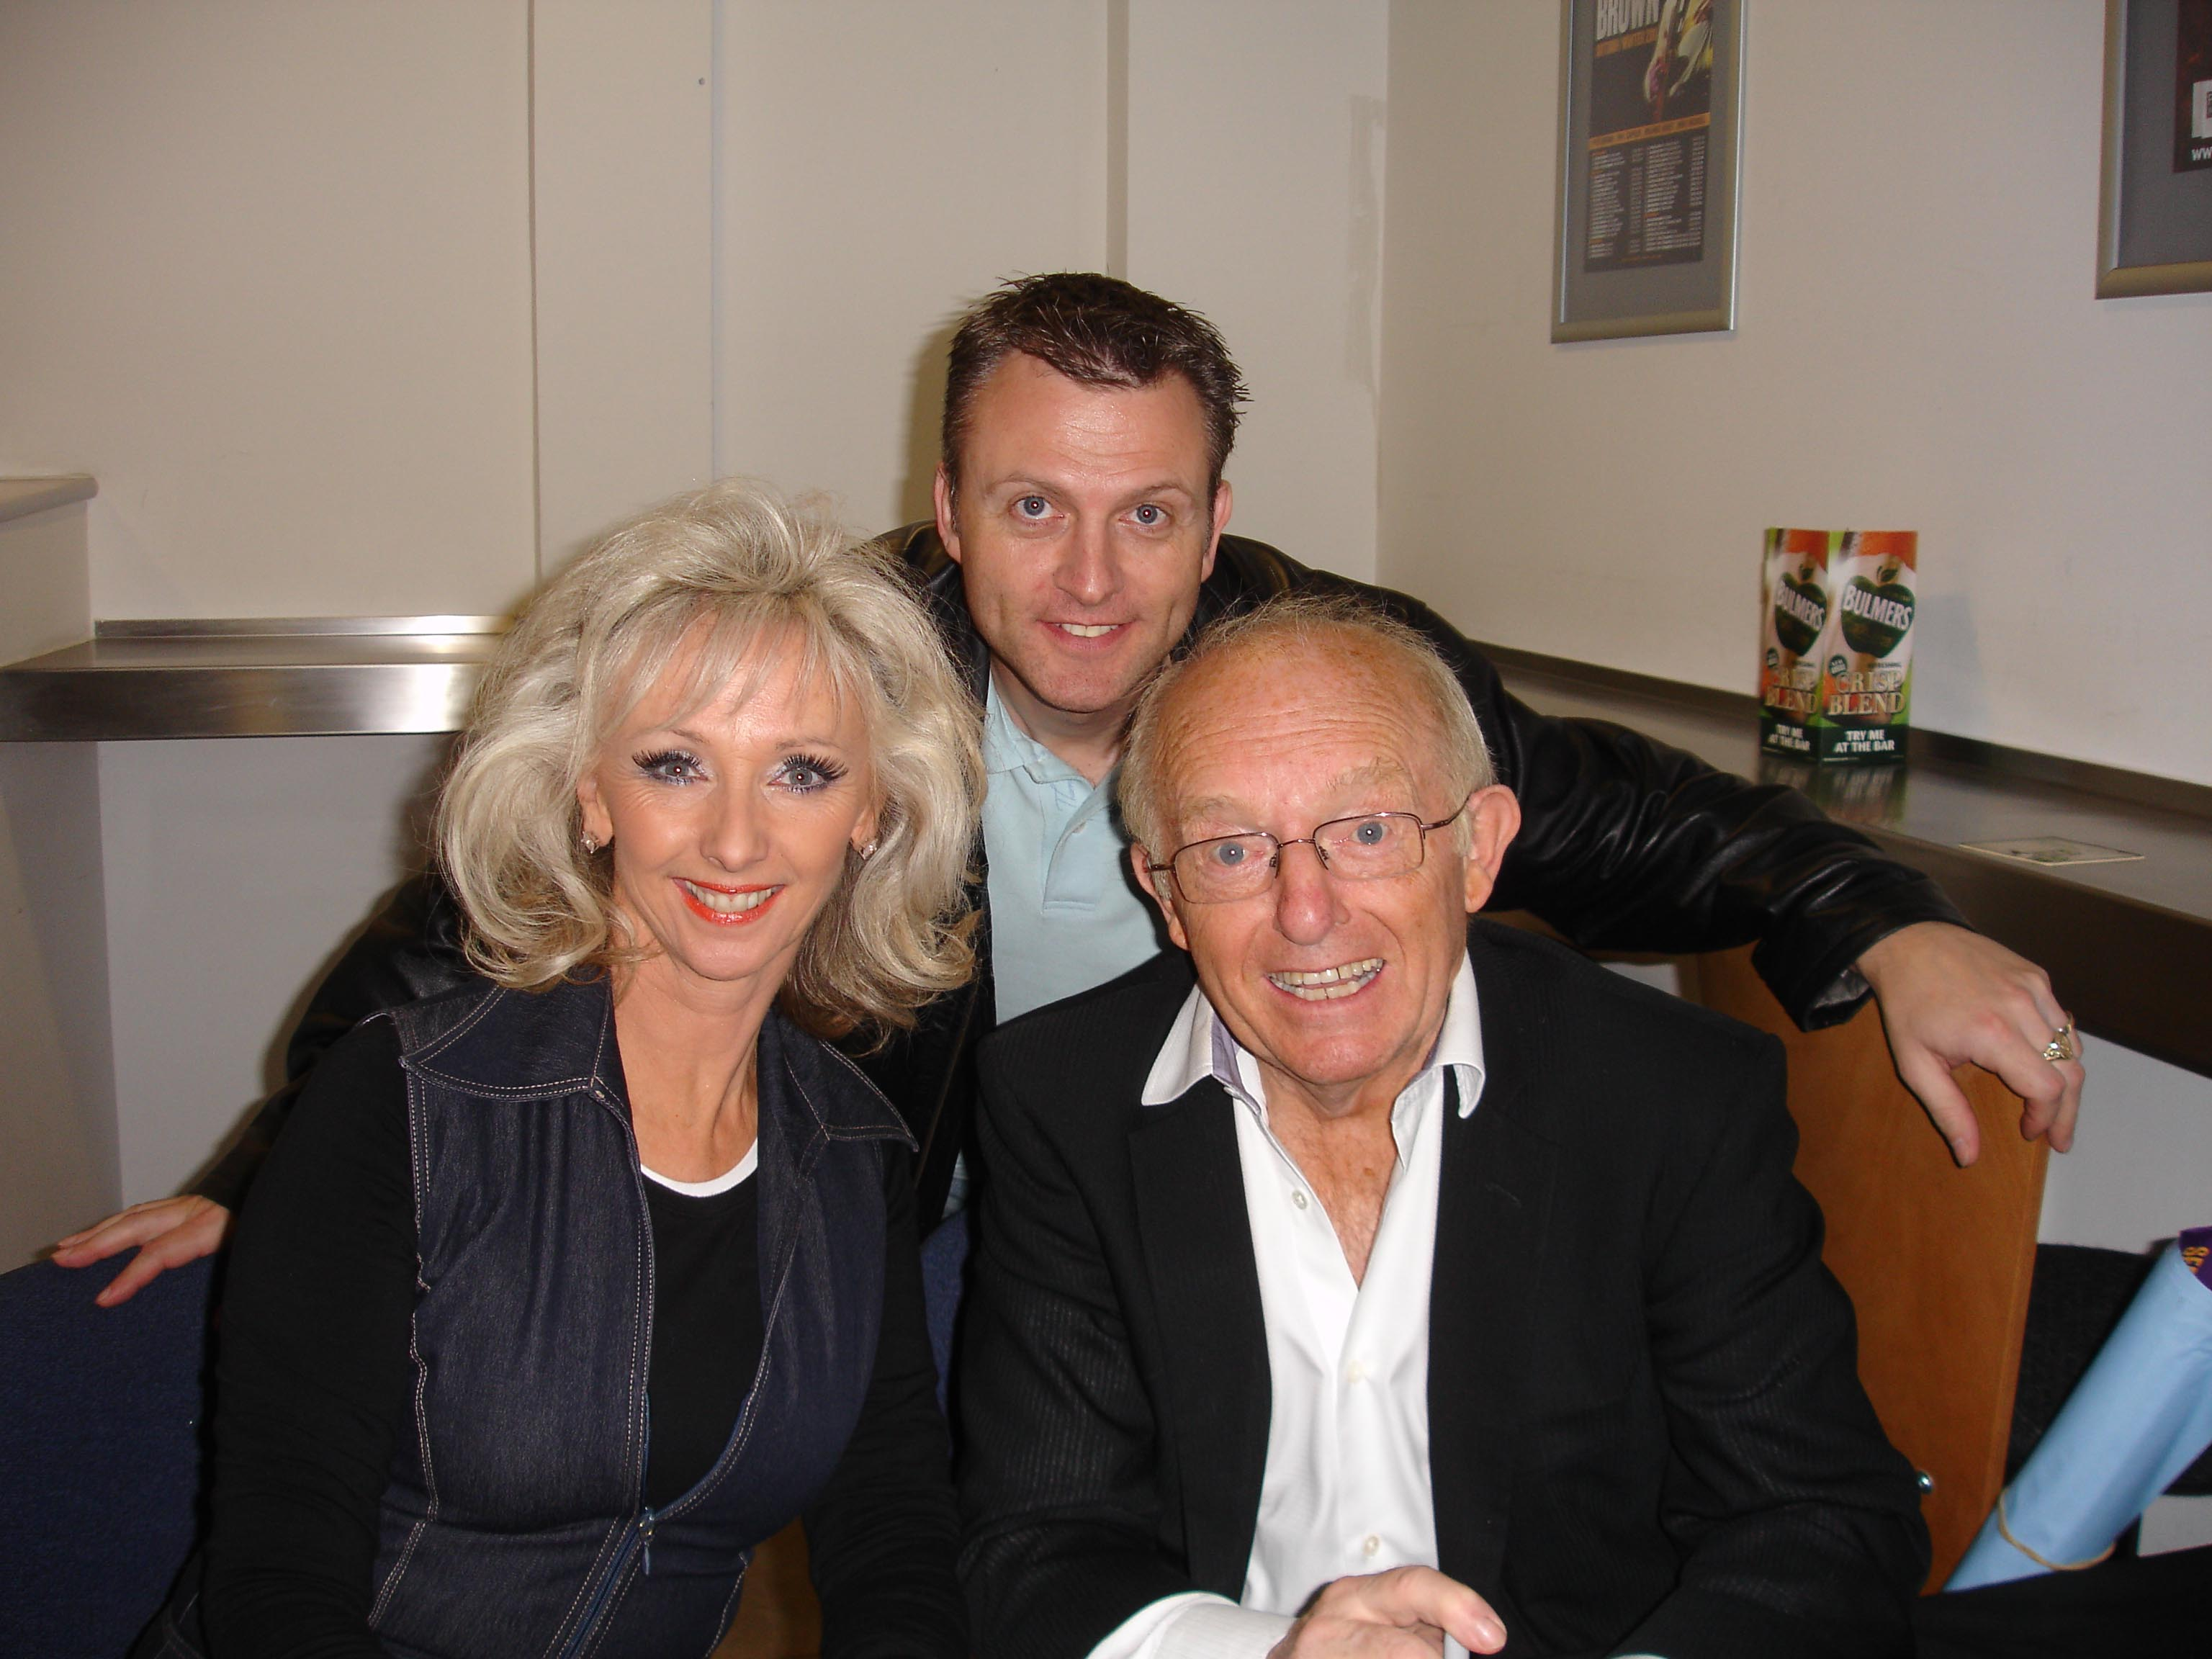 Paul Daniels, Debbie McGee and John Penman